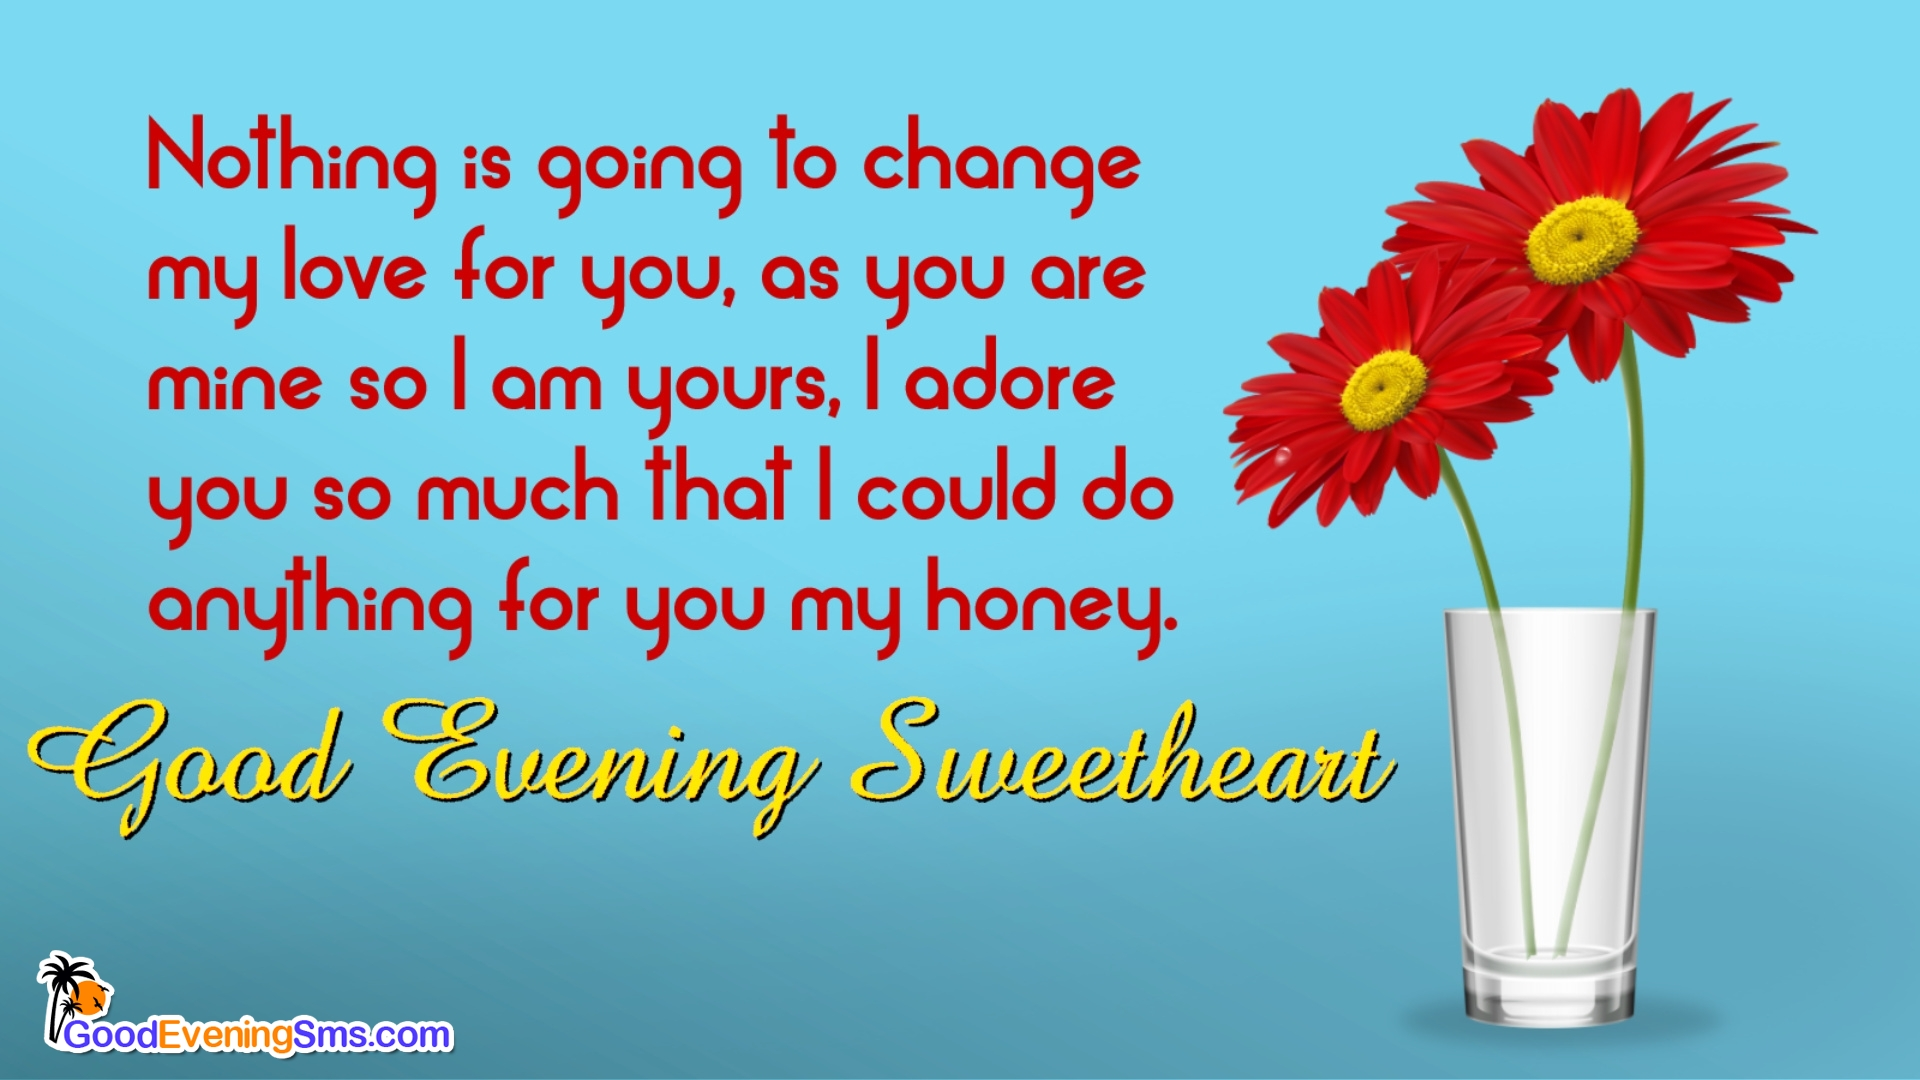 Good Evening Love Wishes For Sweetheart